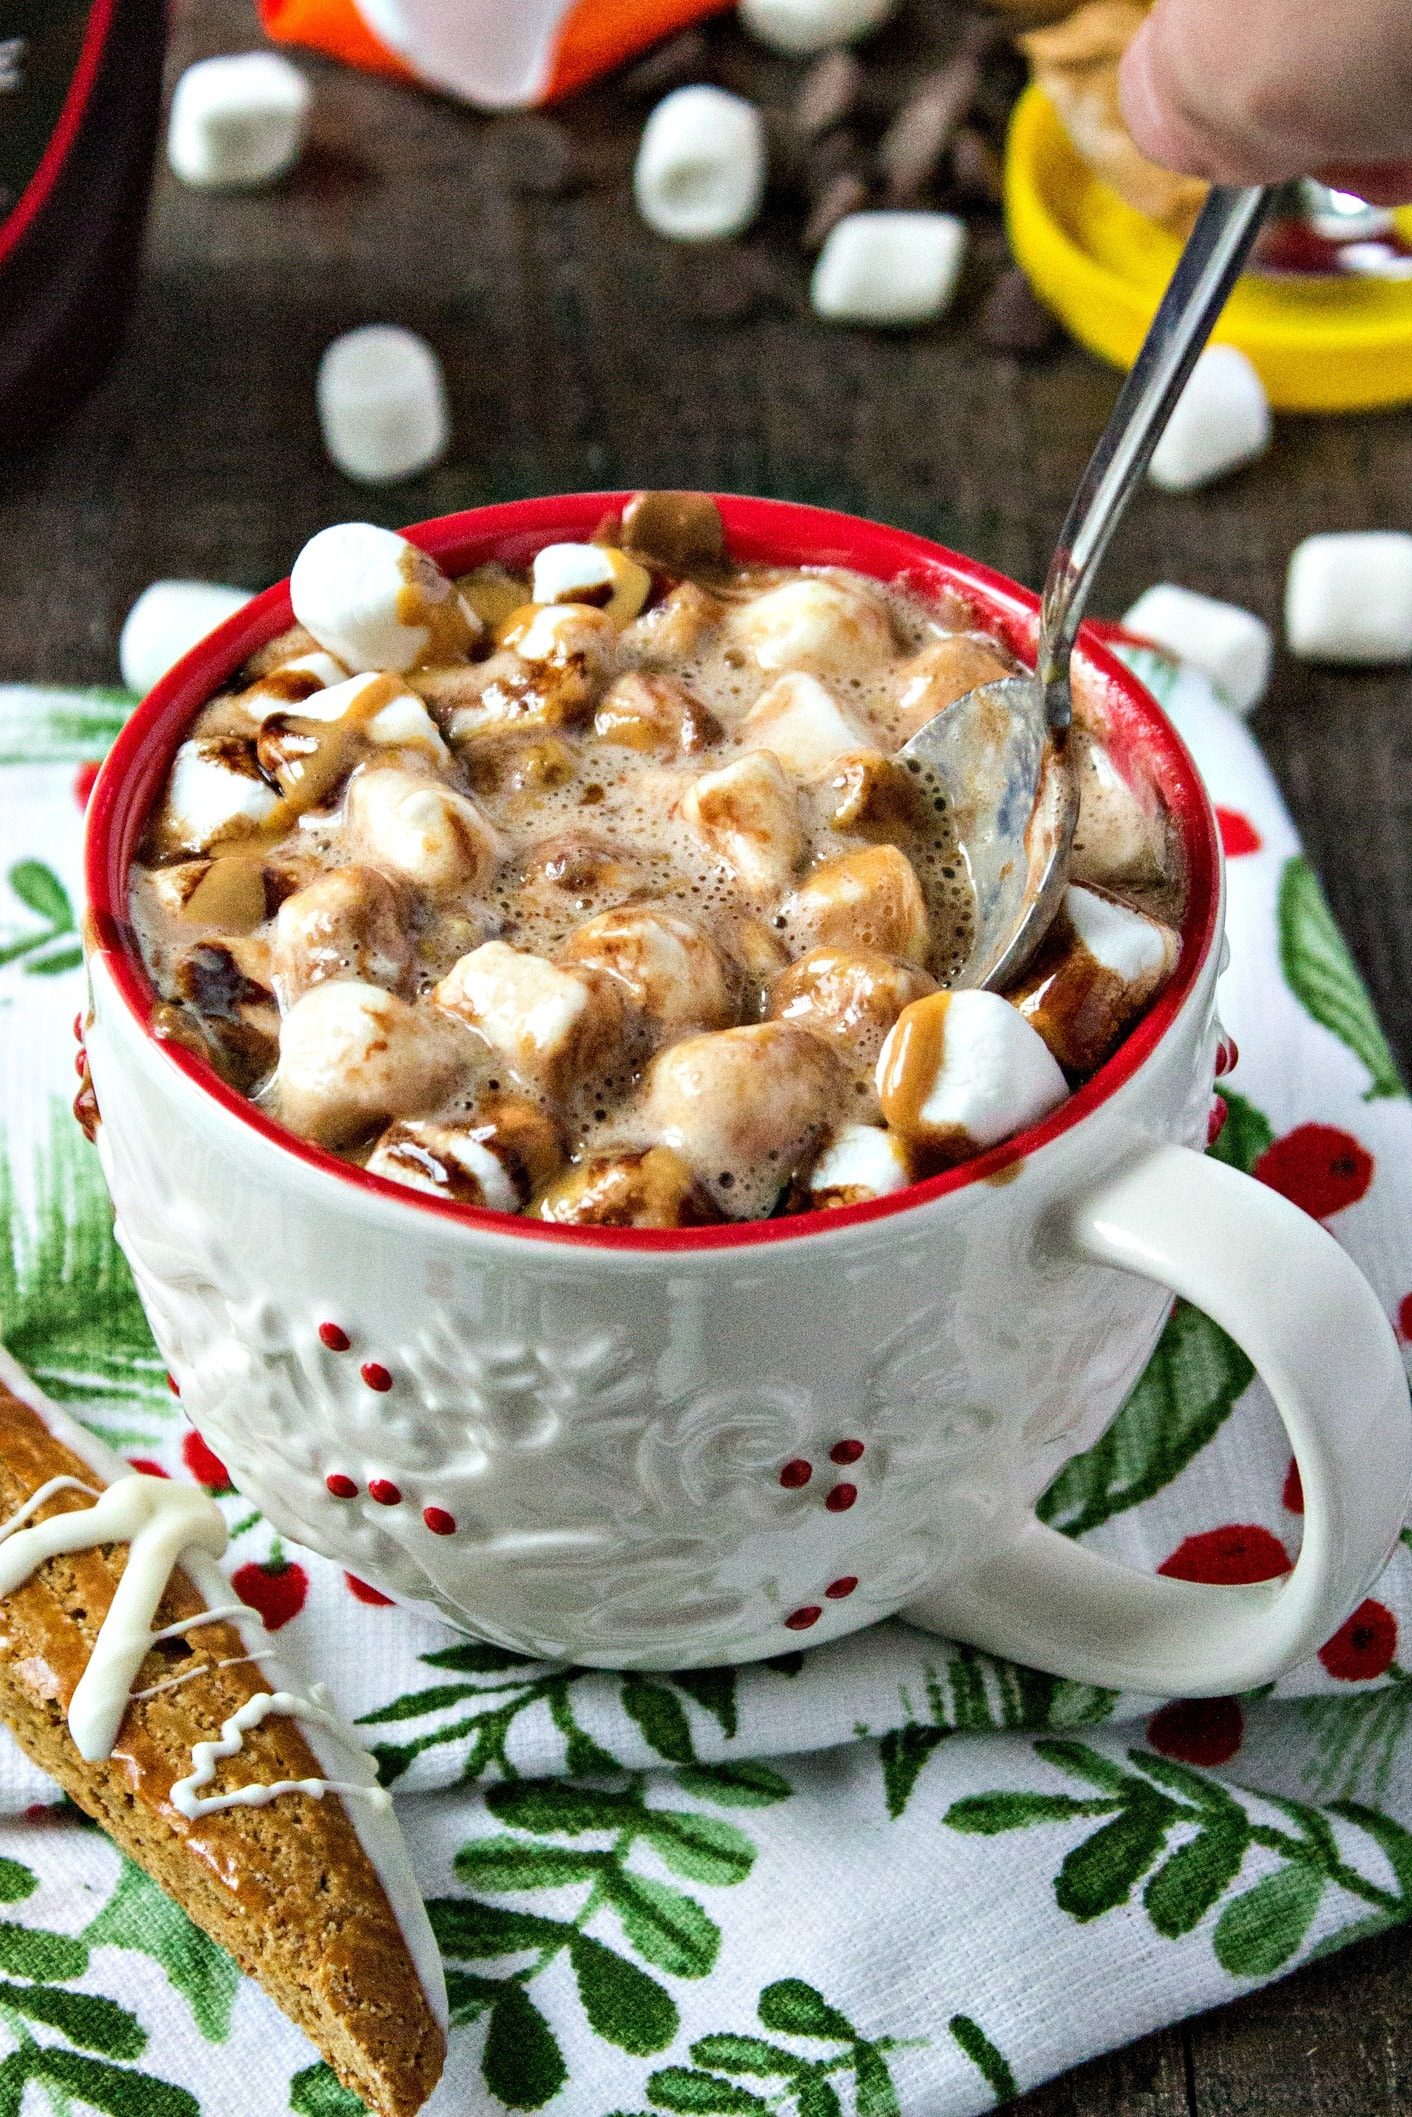 Cup of Peanut butter hot chocolate topped with chocolate syrup, marshmallows and peanut butter